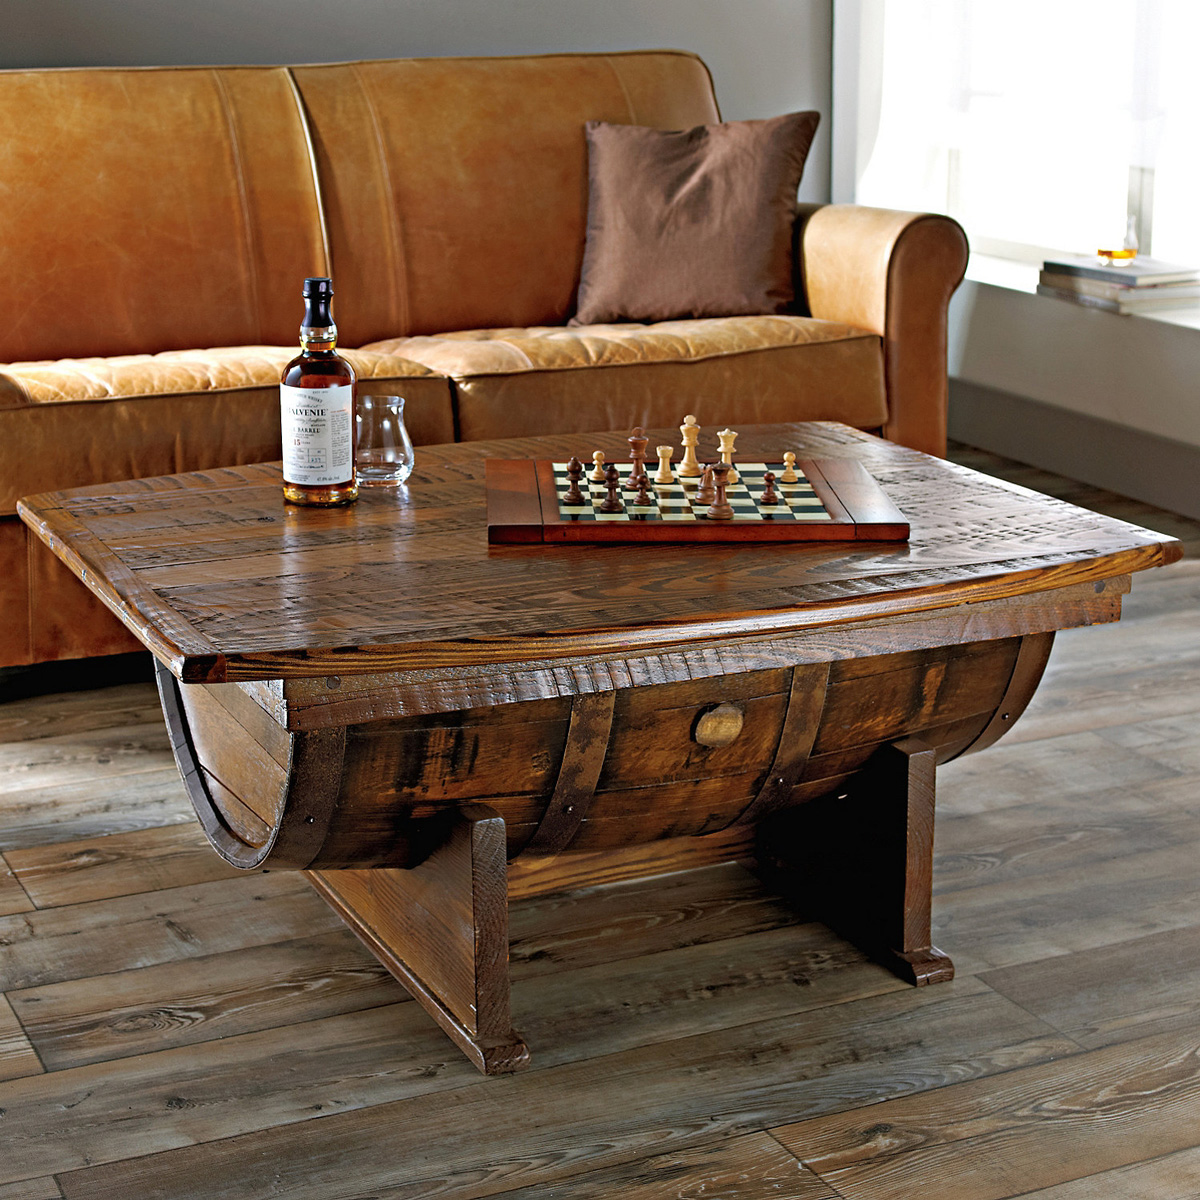 Handmade Vintage Oak Whiskey Barrel Coffee Table - The Green Head